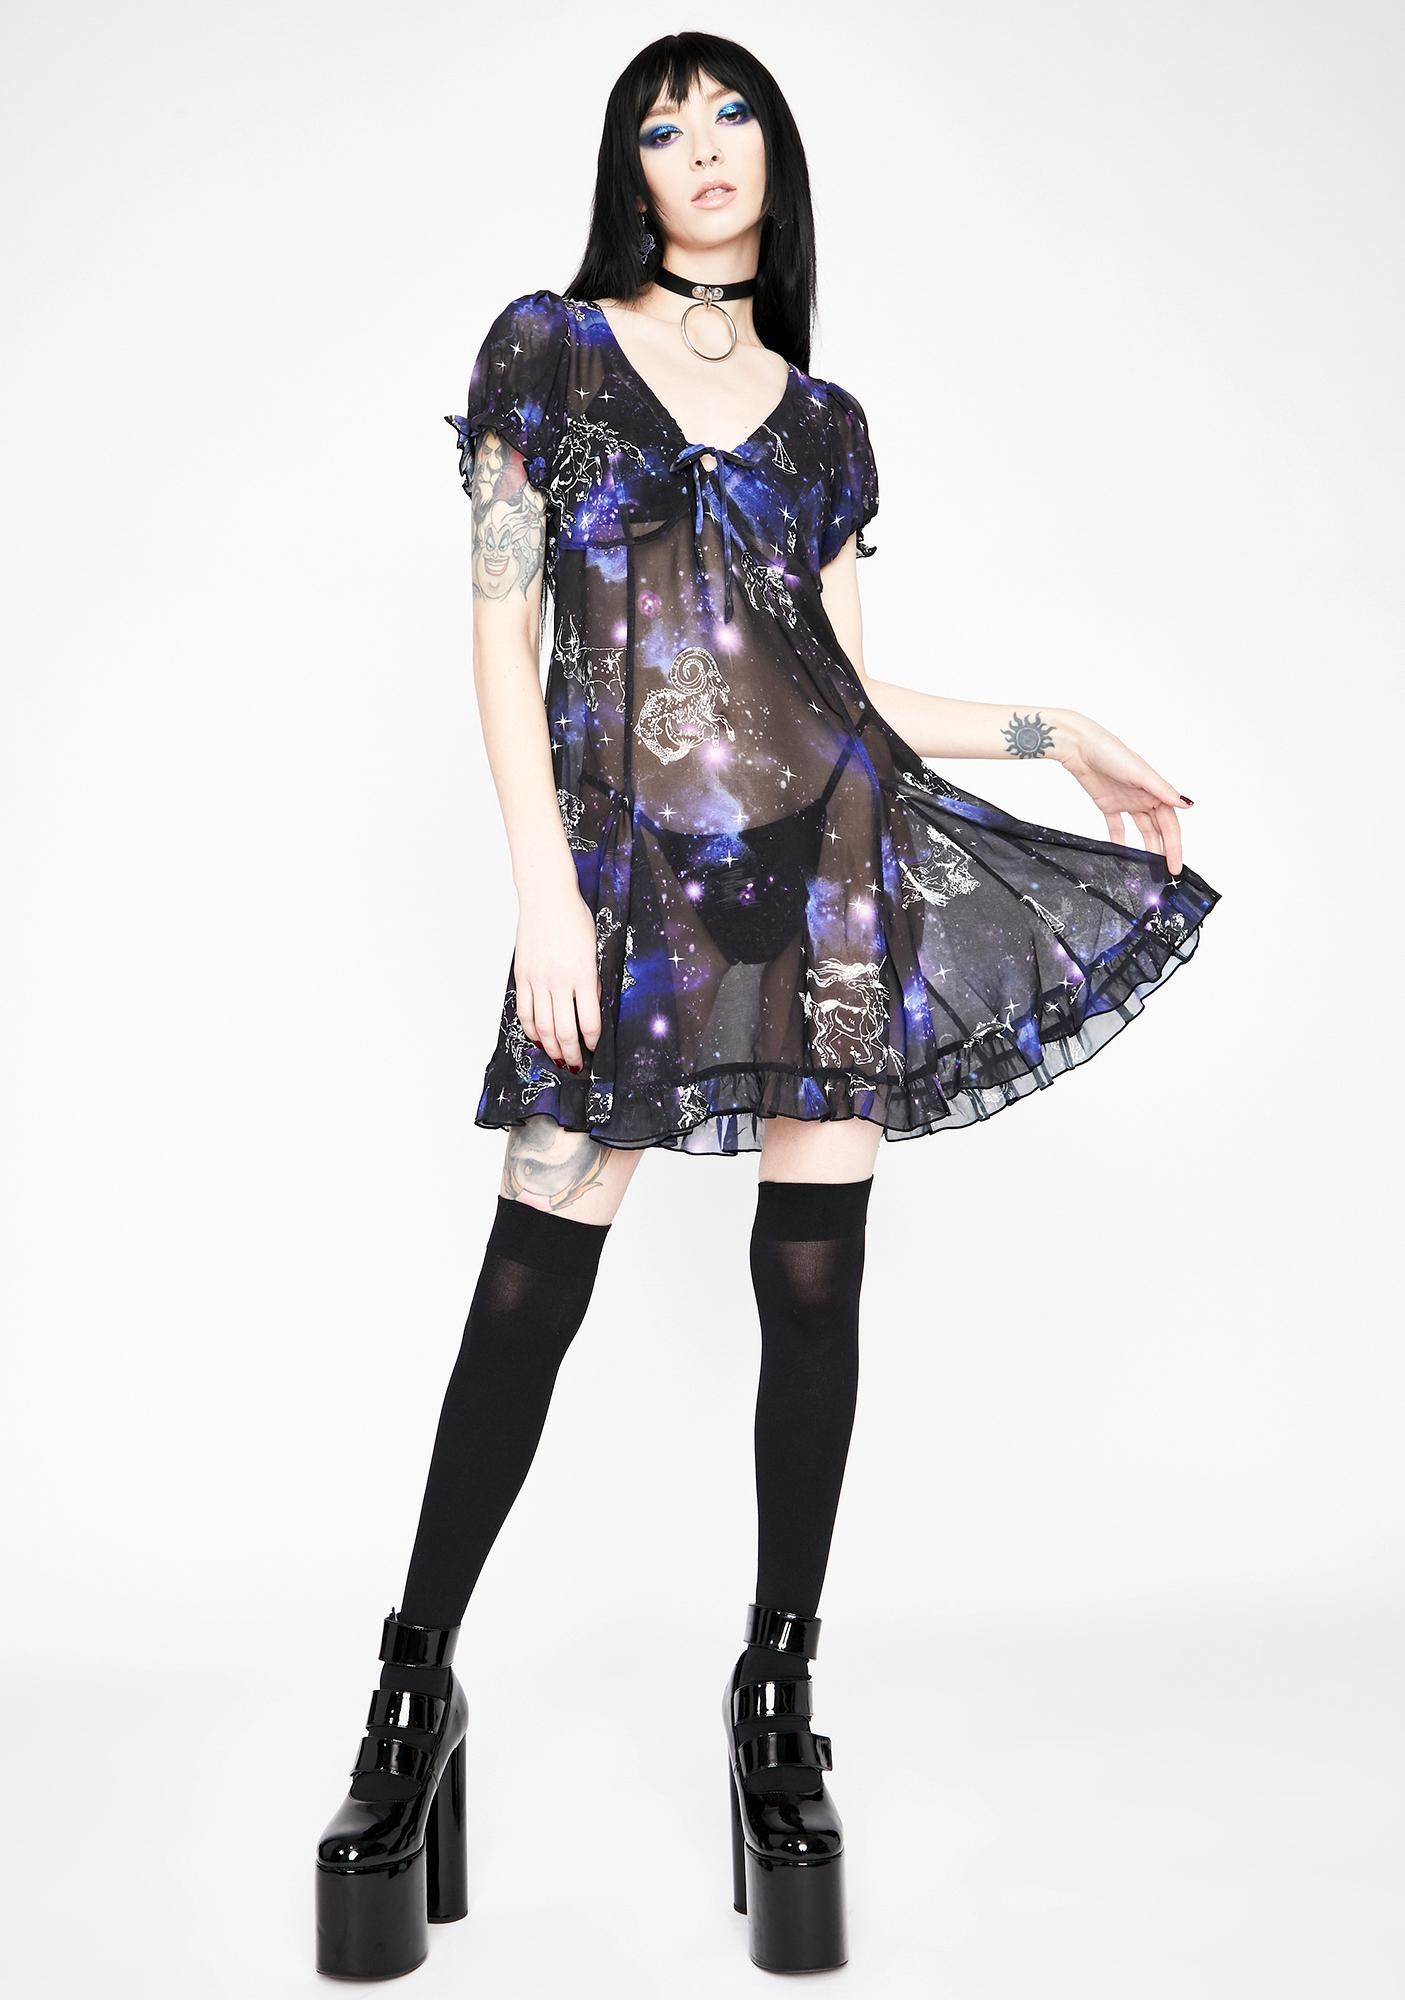 HOROSCOPEZ Rewrite The Stars Babydoll Dress